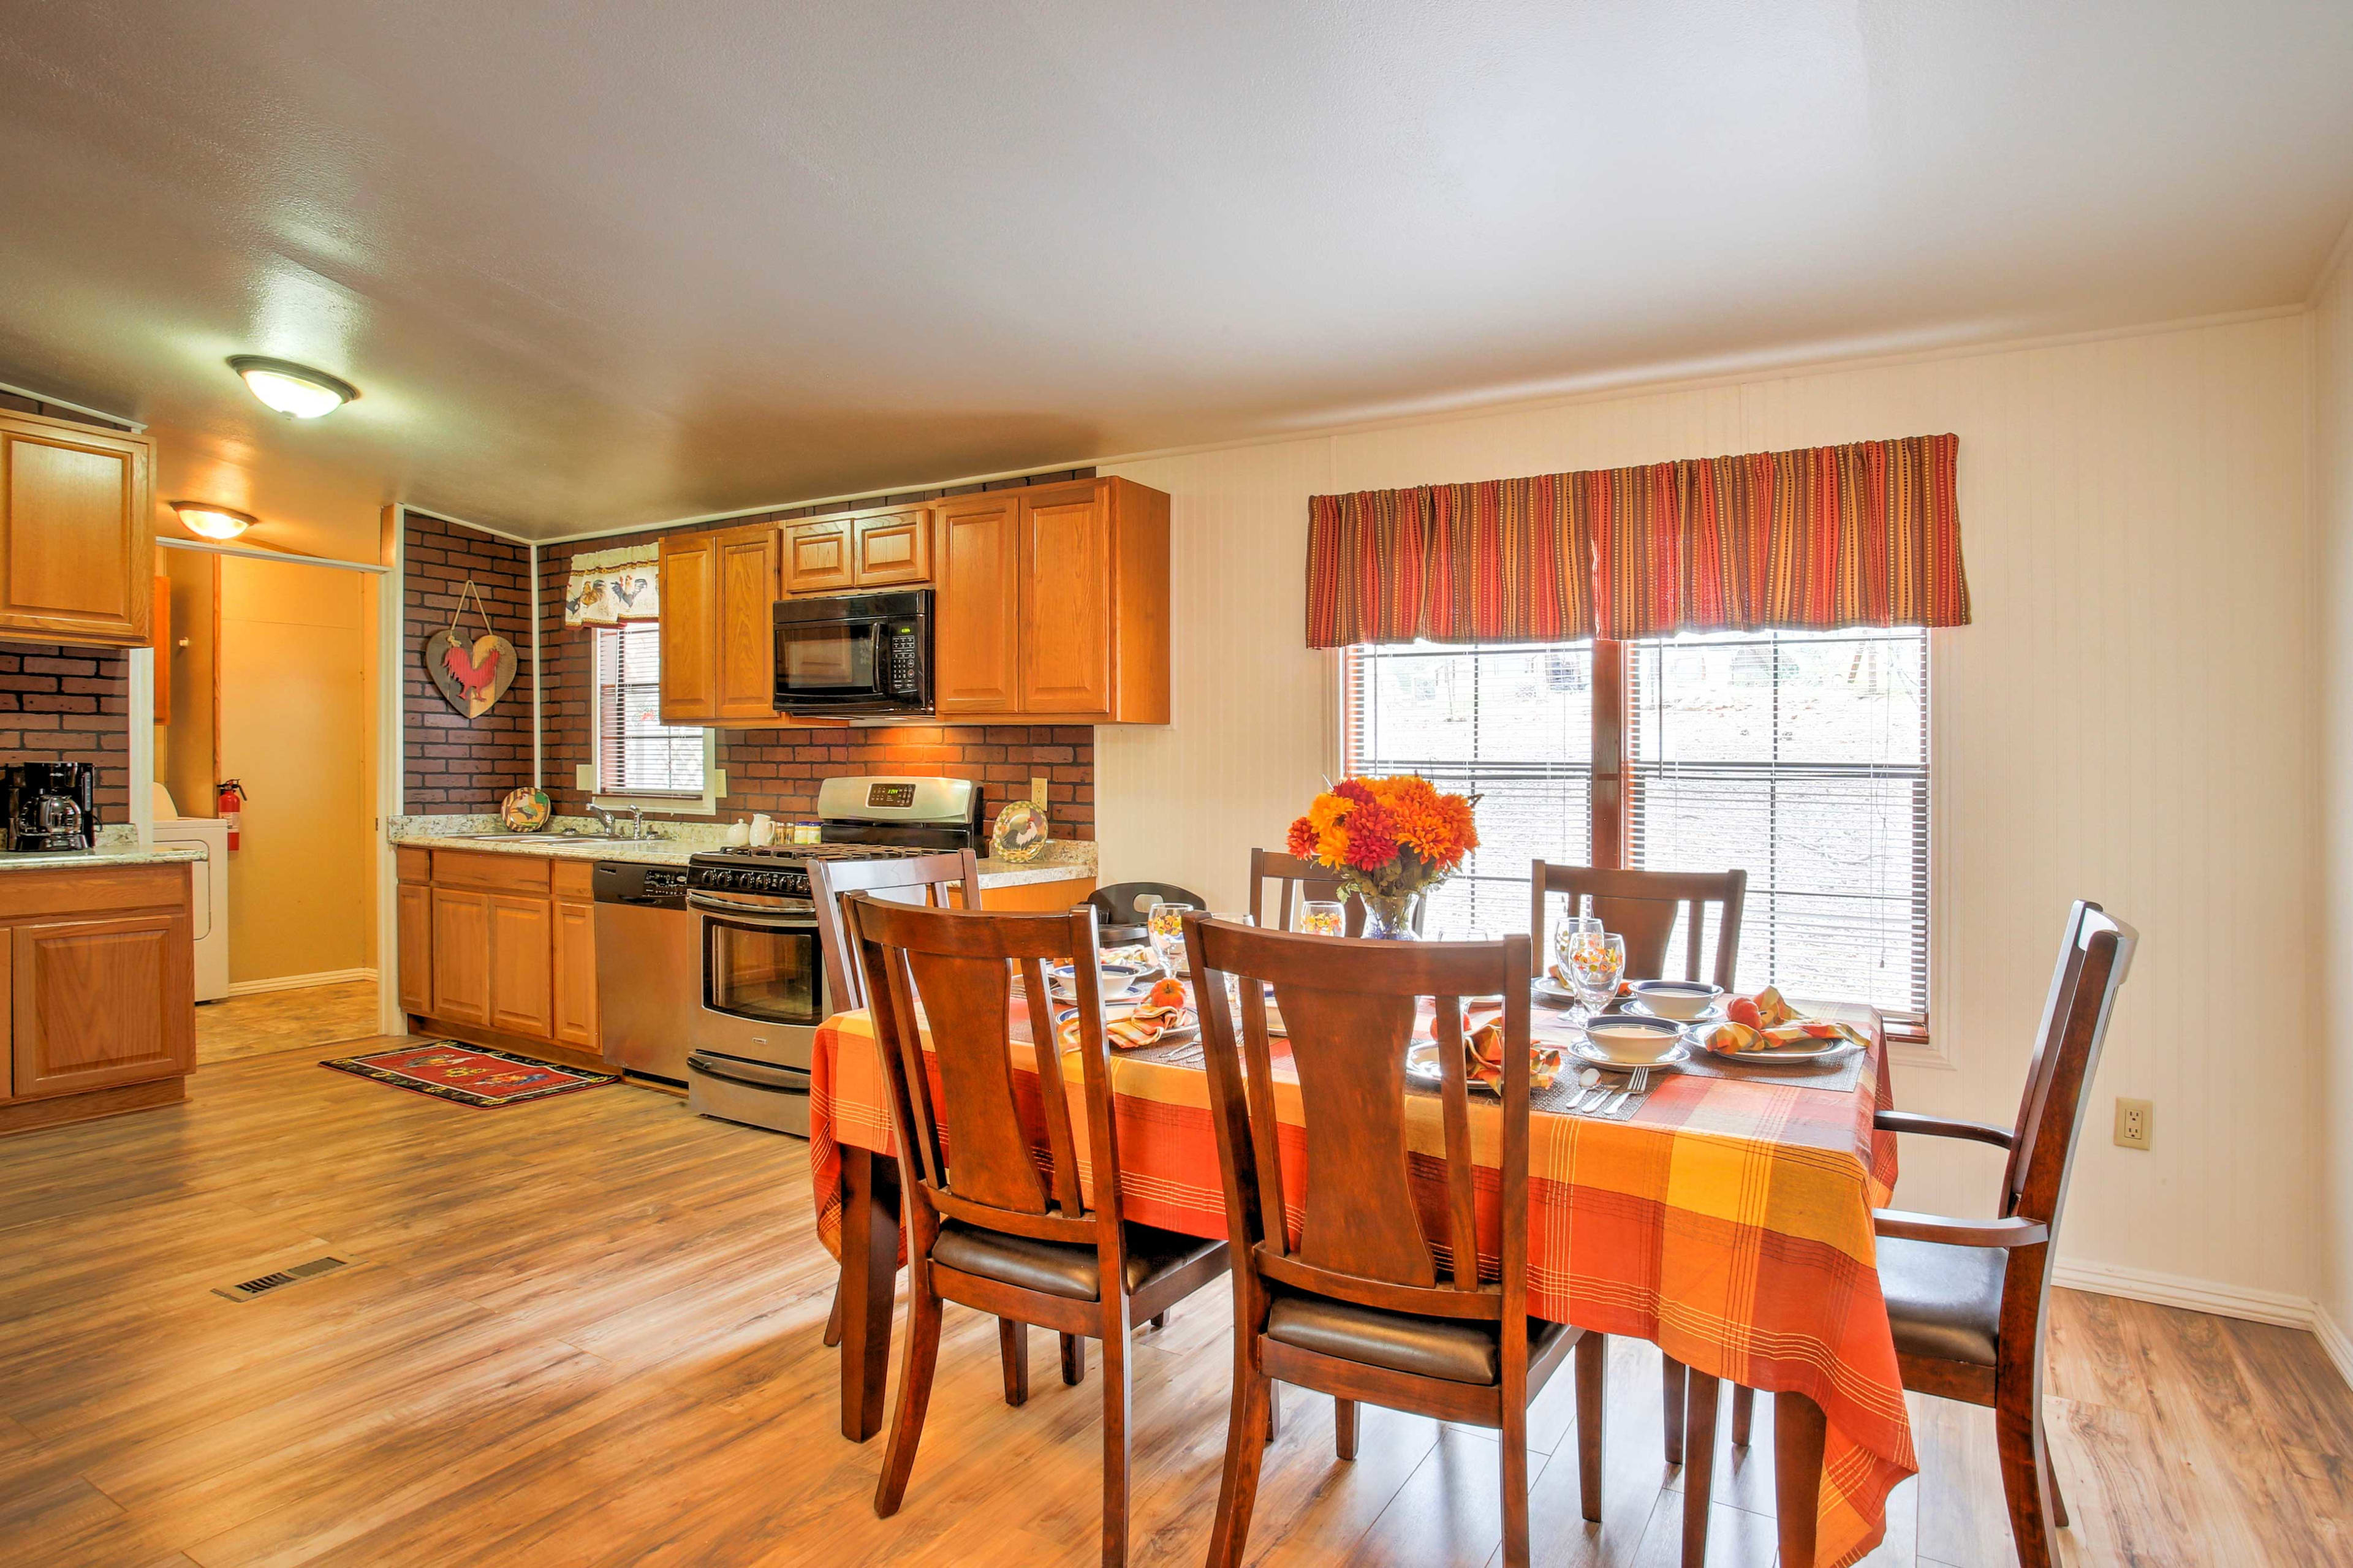 The dining table adjacent to the open kitchen has seating for everyone in your group.